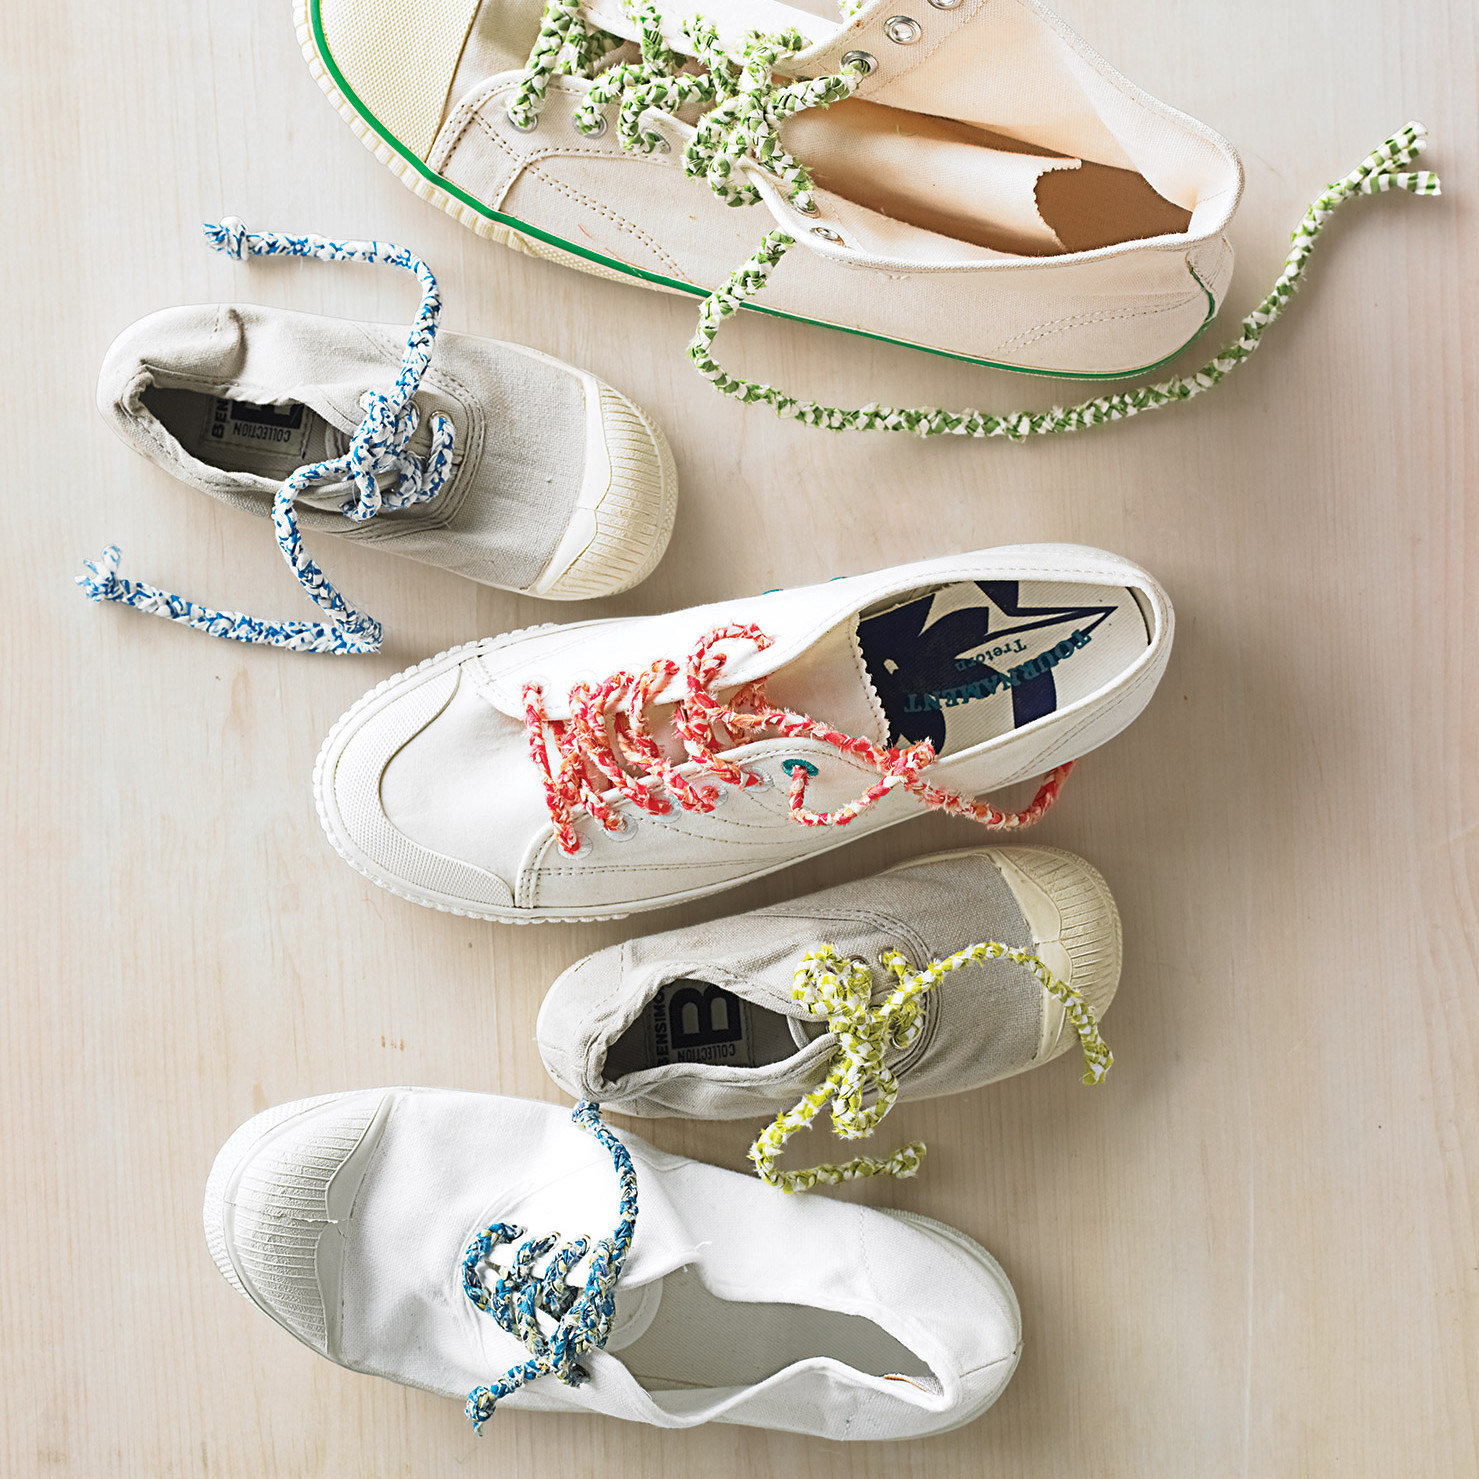 Ways To Kick Up Your Style With Diy Shoes Martha Stewart